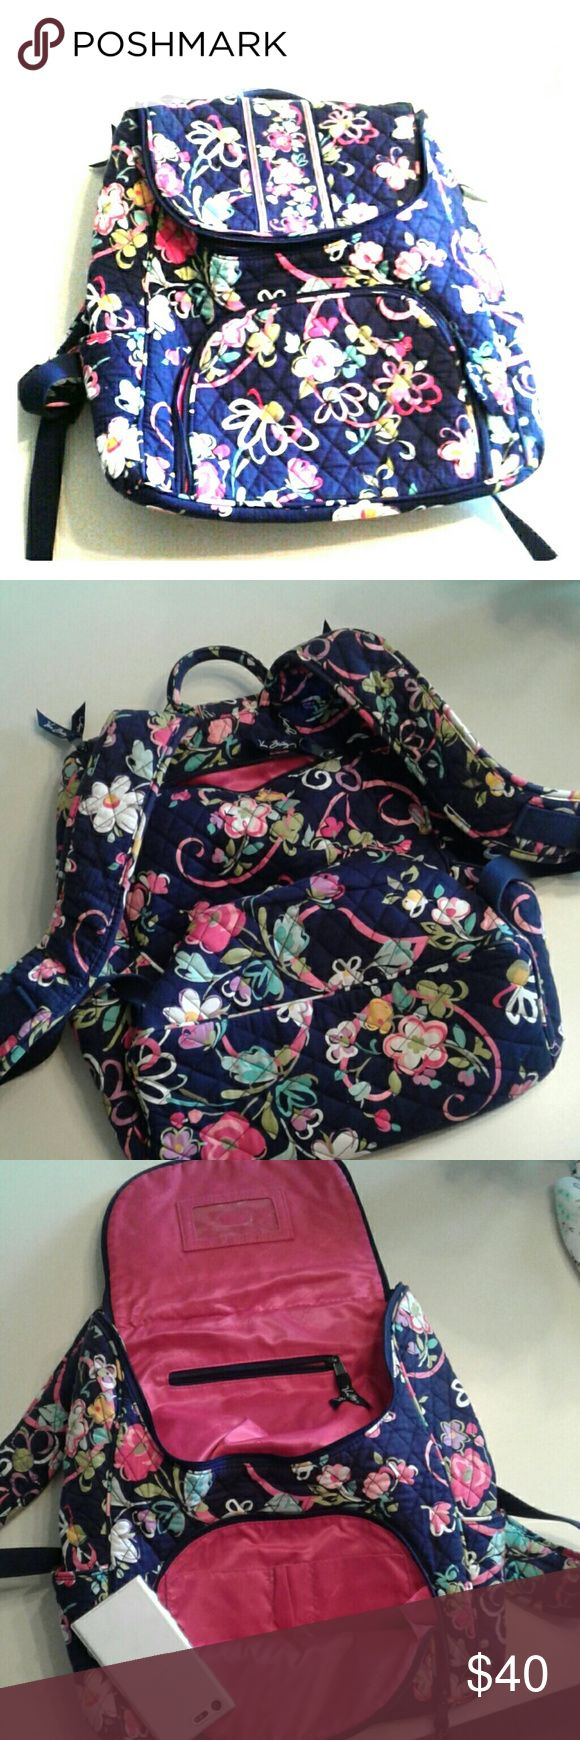 Vera Bradley Backpack Cute perfect condition Vera Bradley backpack with a pink shimmery inside. Tons of zippers and pockets on the side for storage. Vera Bradley Bags Backpacks